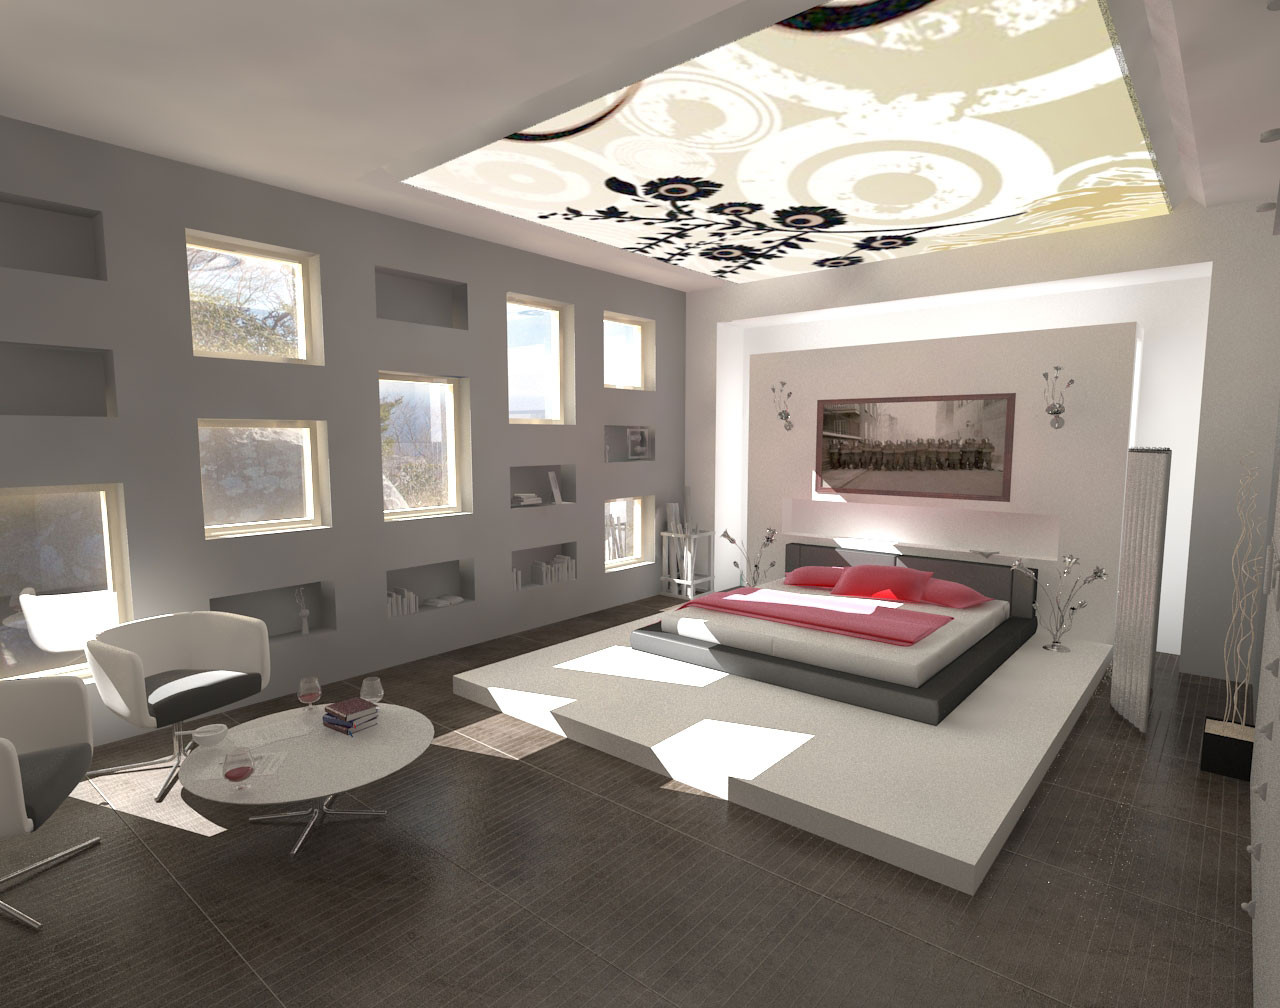 Best ideas about Bedroom Colors Ideas . Save or Pin Fantastic Modern Bedroom Paints Colors Ideas Now.